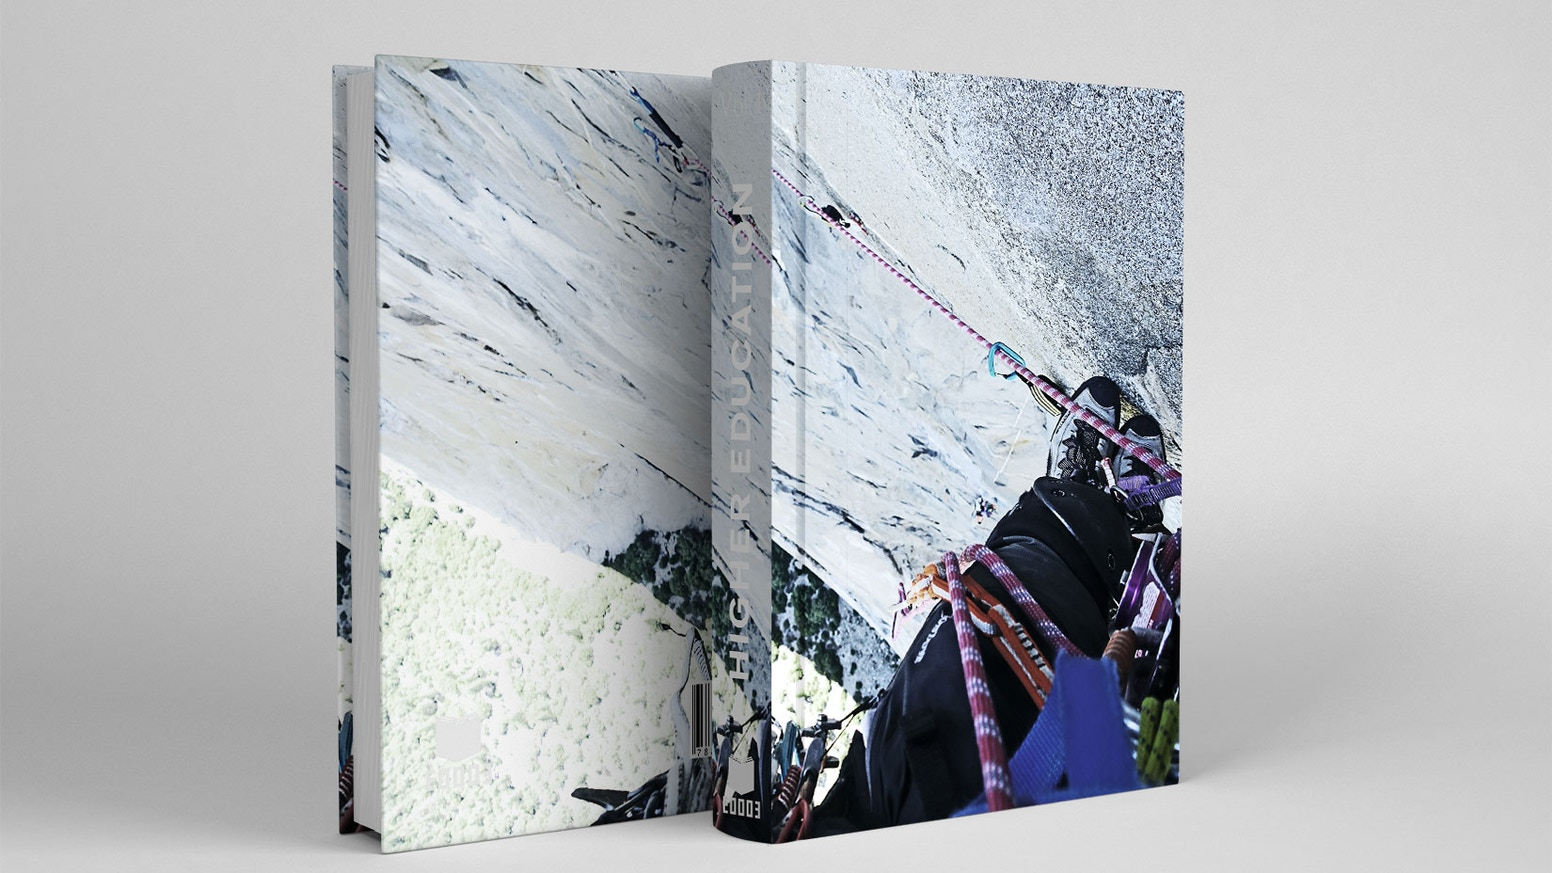 Ever wanted to climb a big wall? Higher Education aims to be the most complete manual for big wall climbers.